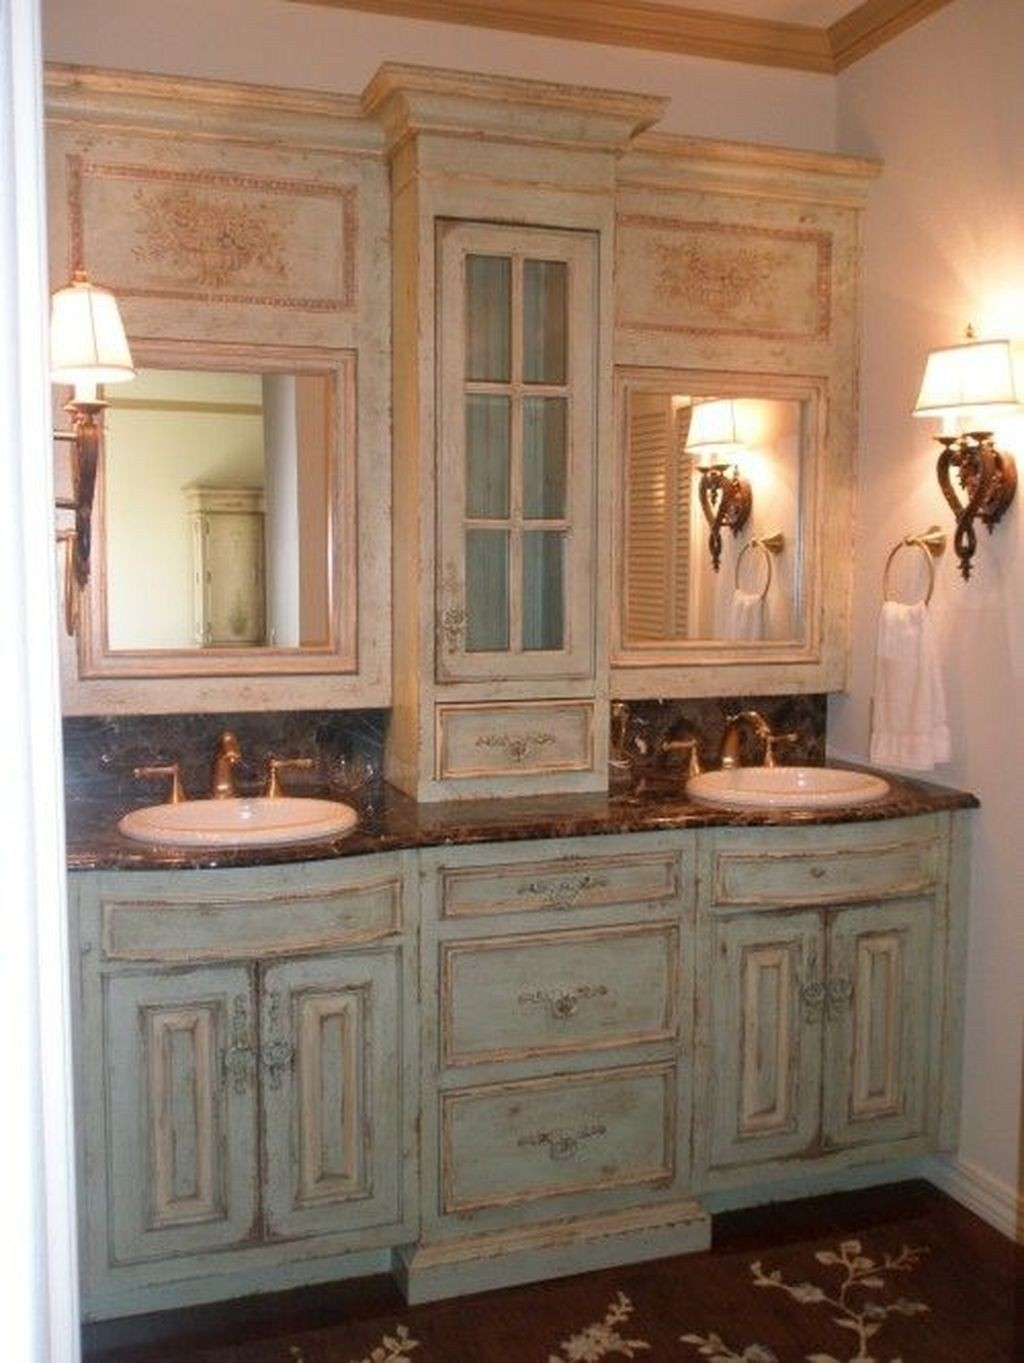 Bathroom Cabinets Storage Home Decor Ideas Modern Bathroom Cabinets